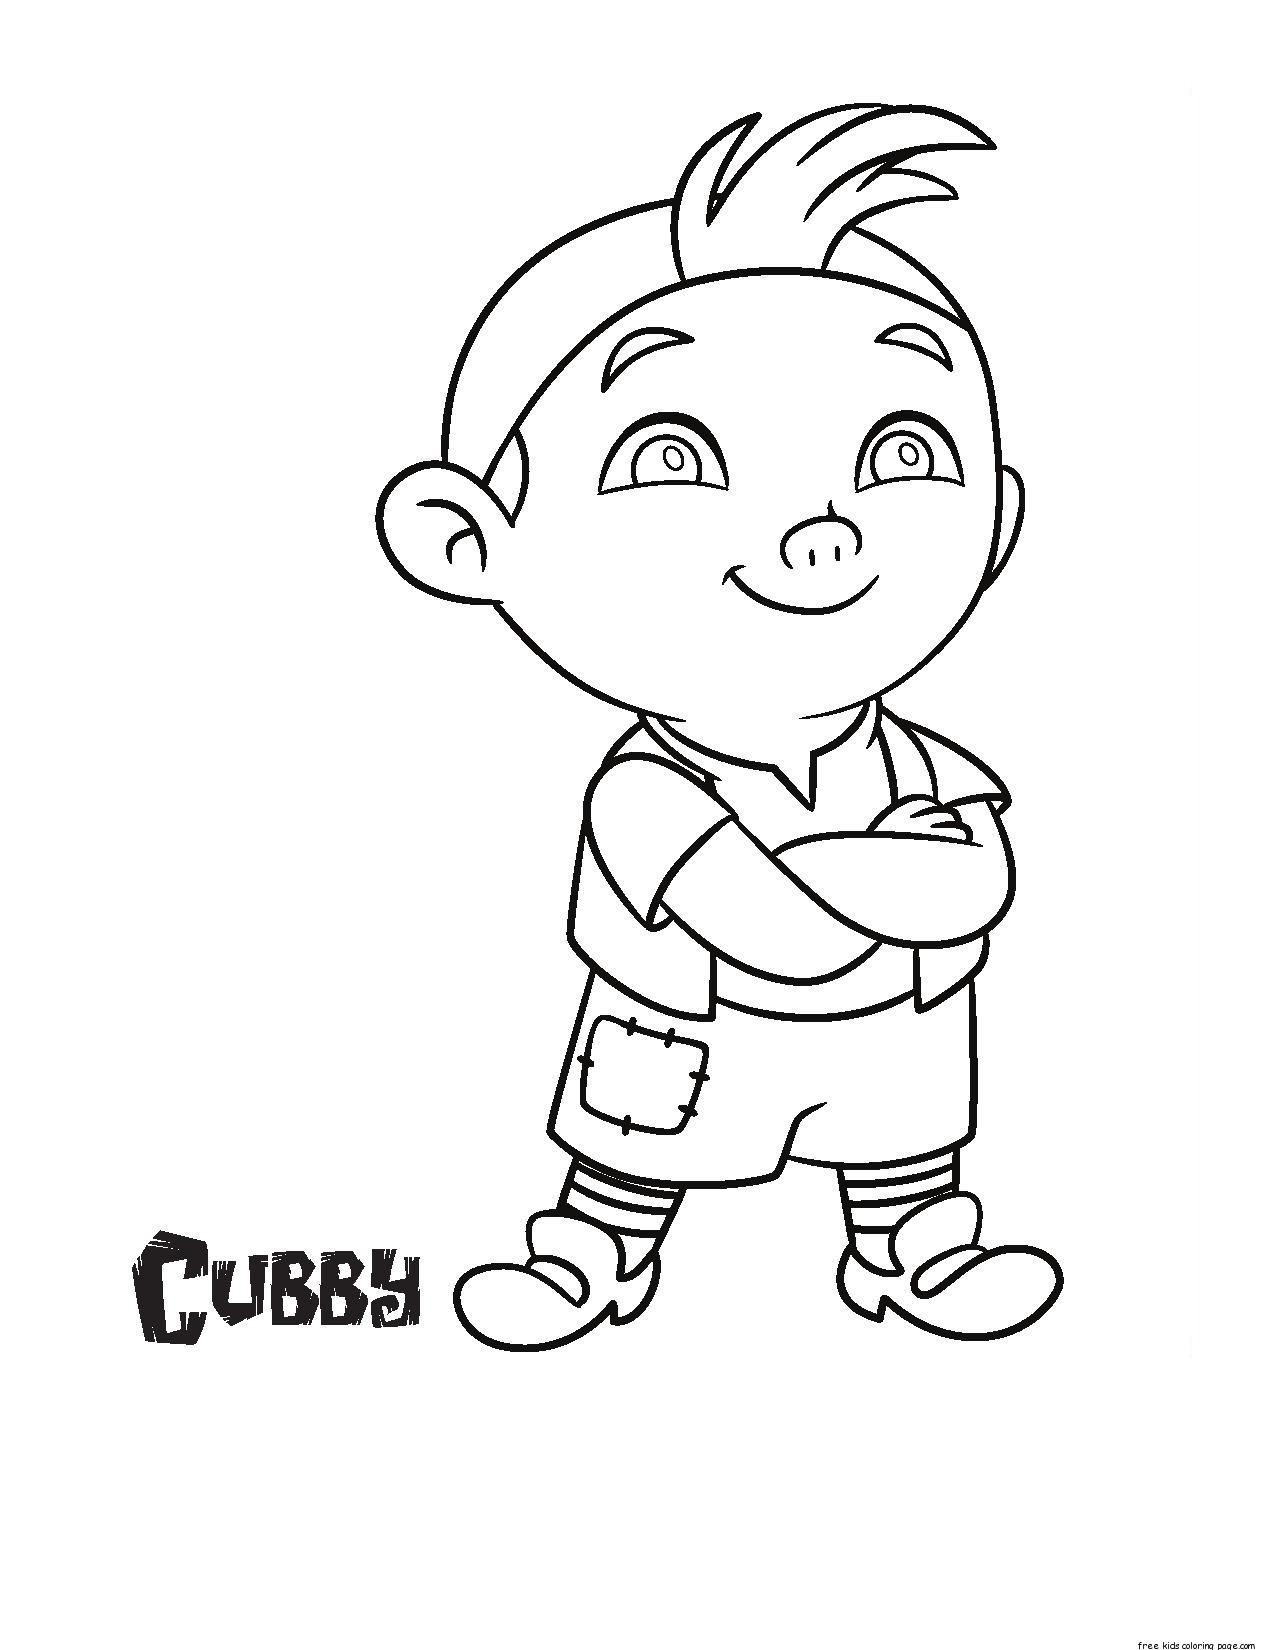 jake and the never land pirates cubby coloring pages free